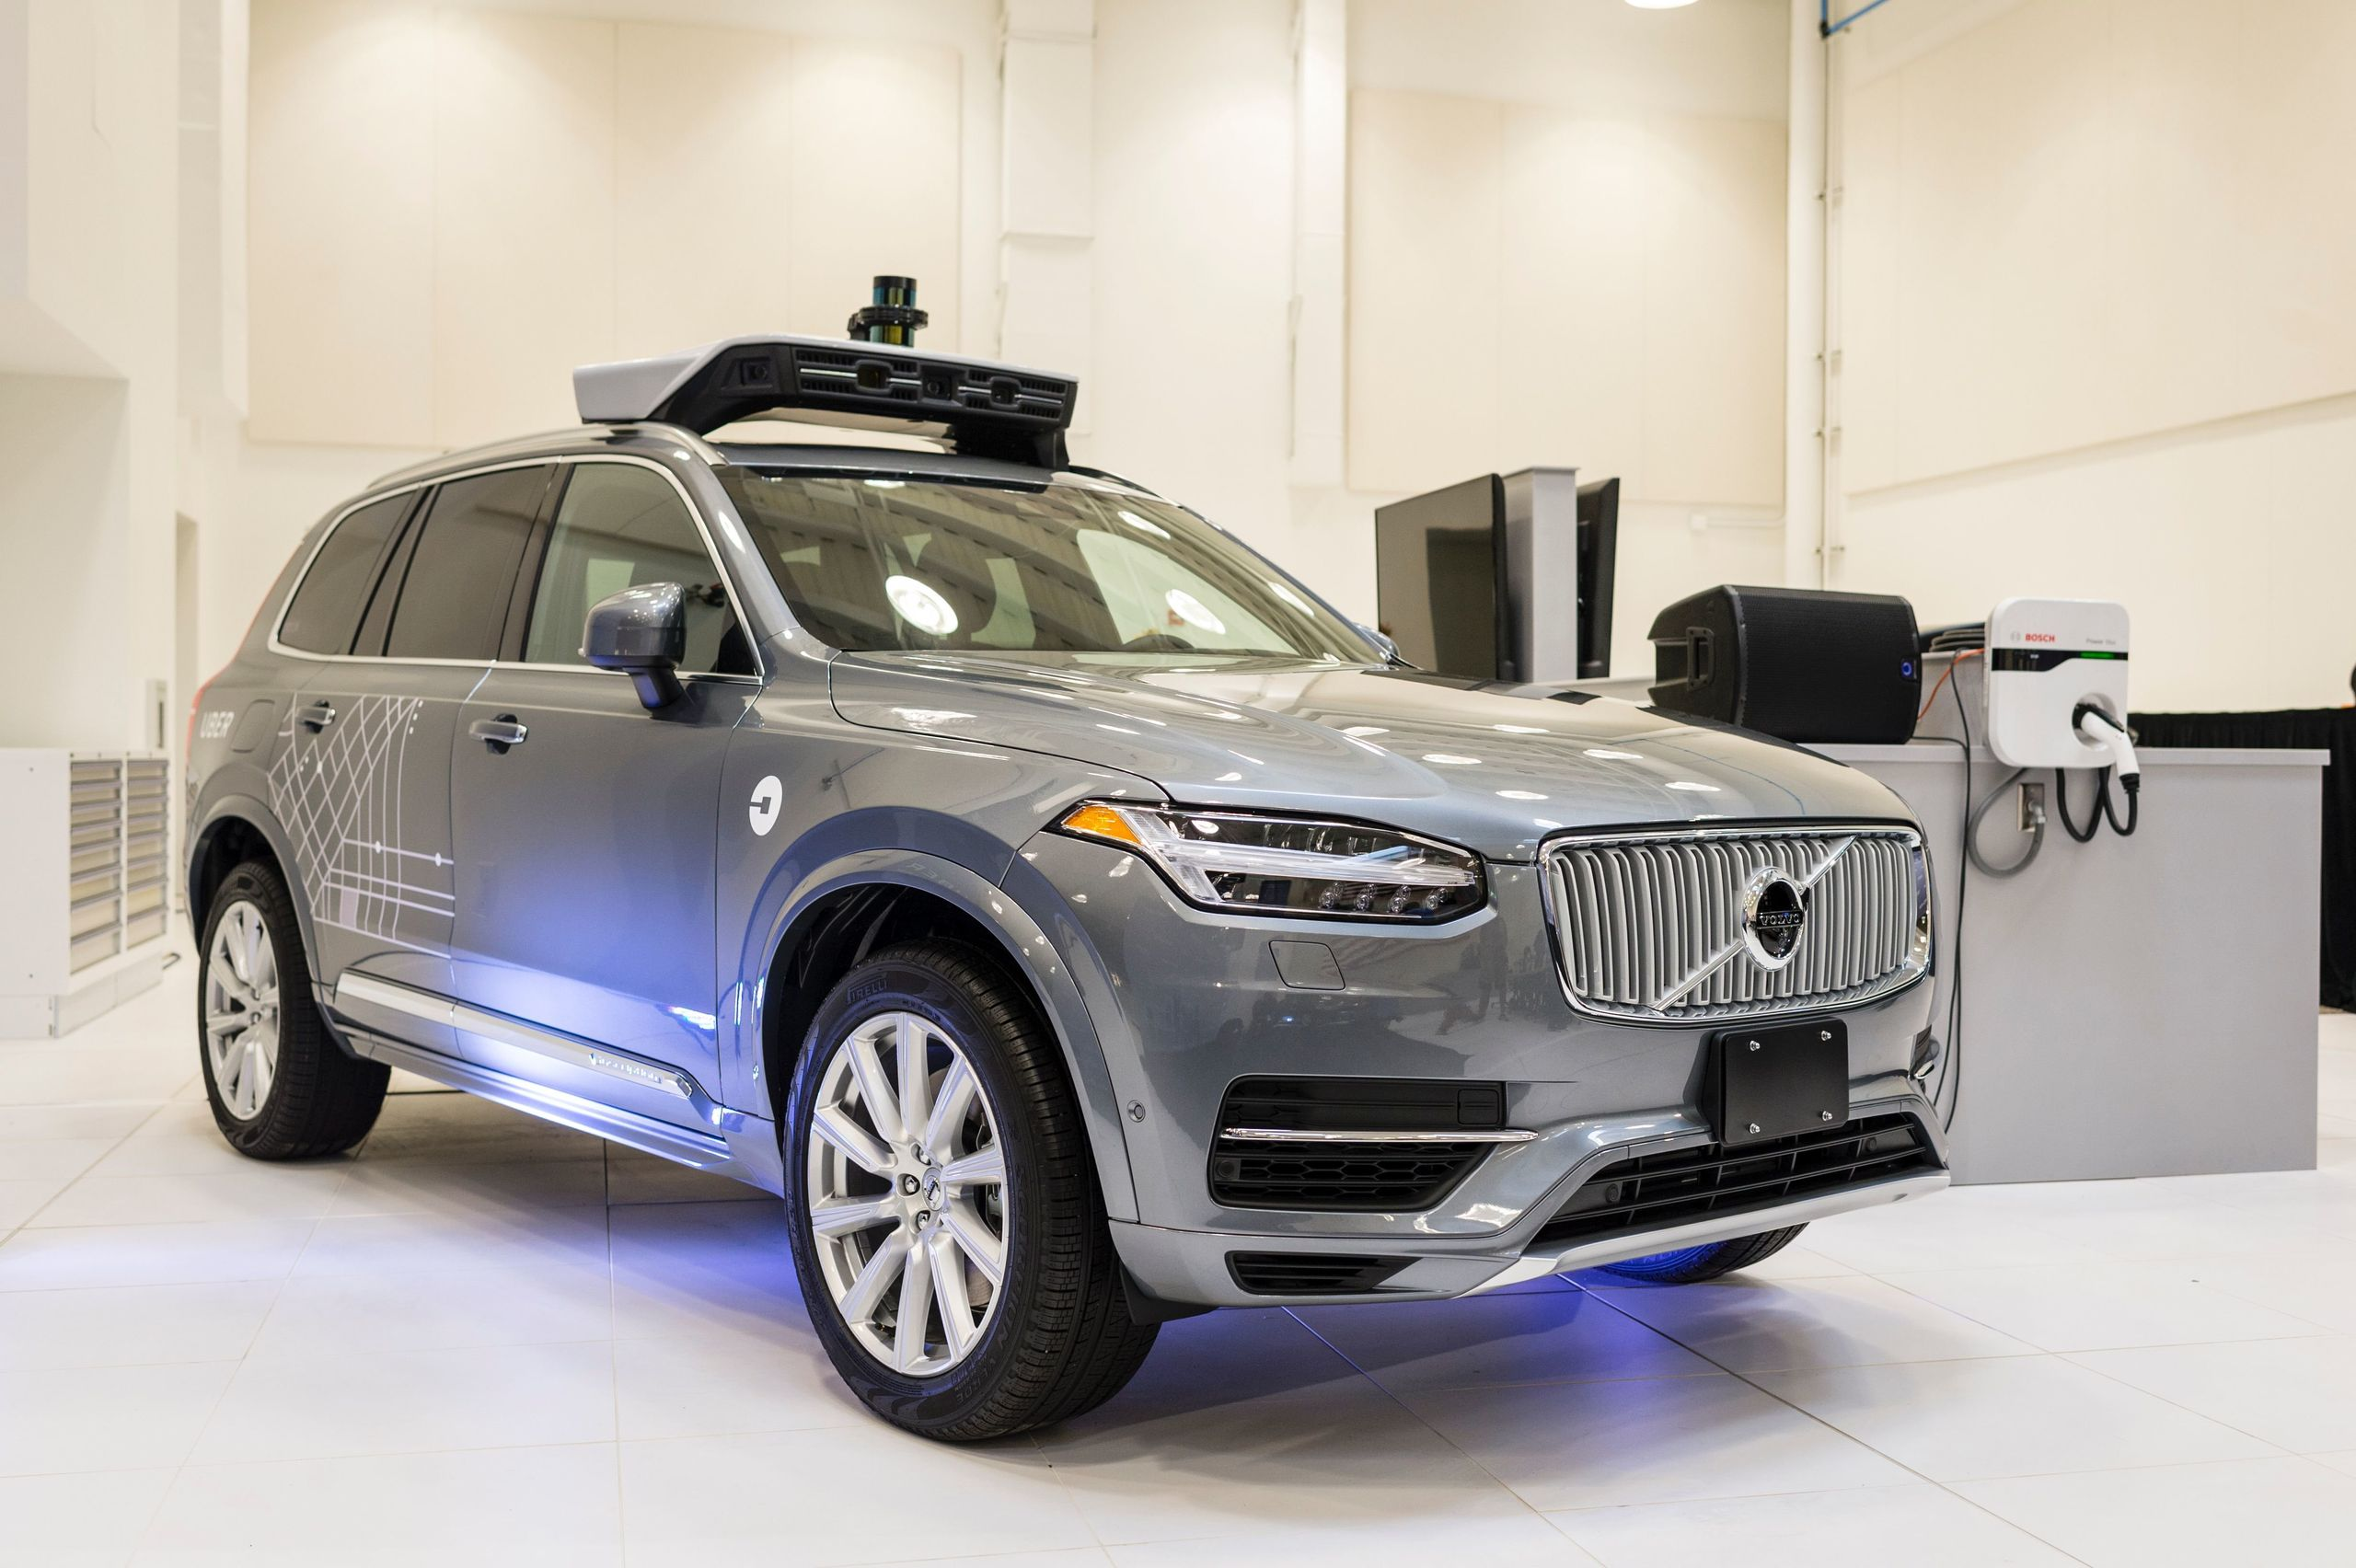 Uber's self-driving vehicles are topped with rotating sensors. This pilot model is displayed at the Uber Advanced Technologie